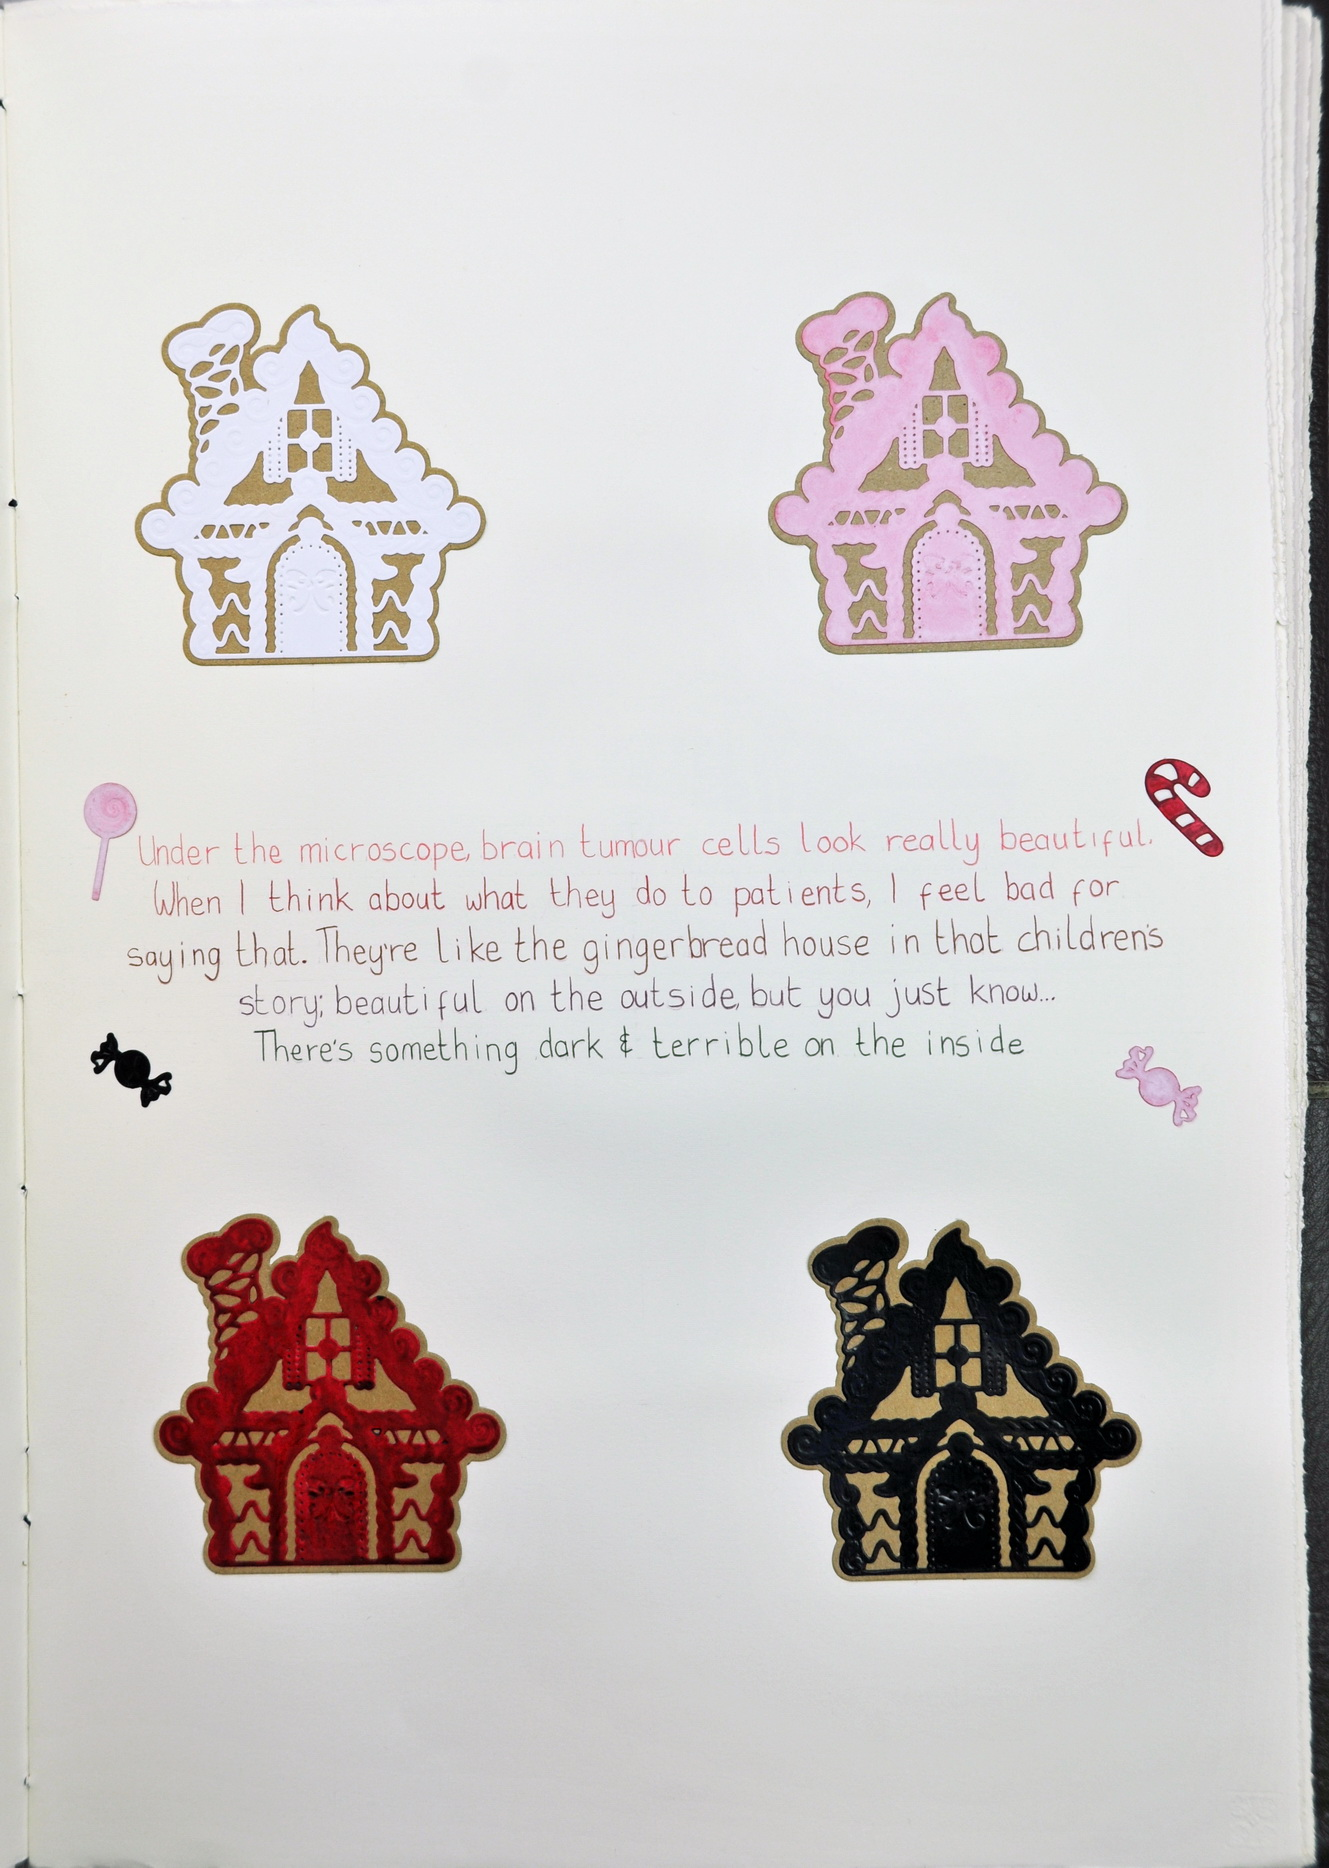 18_Chp4-Found-on-the-Journey_P4_Gingerbread_House_resize.jpg